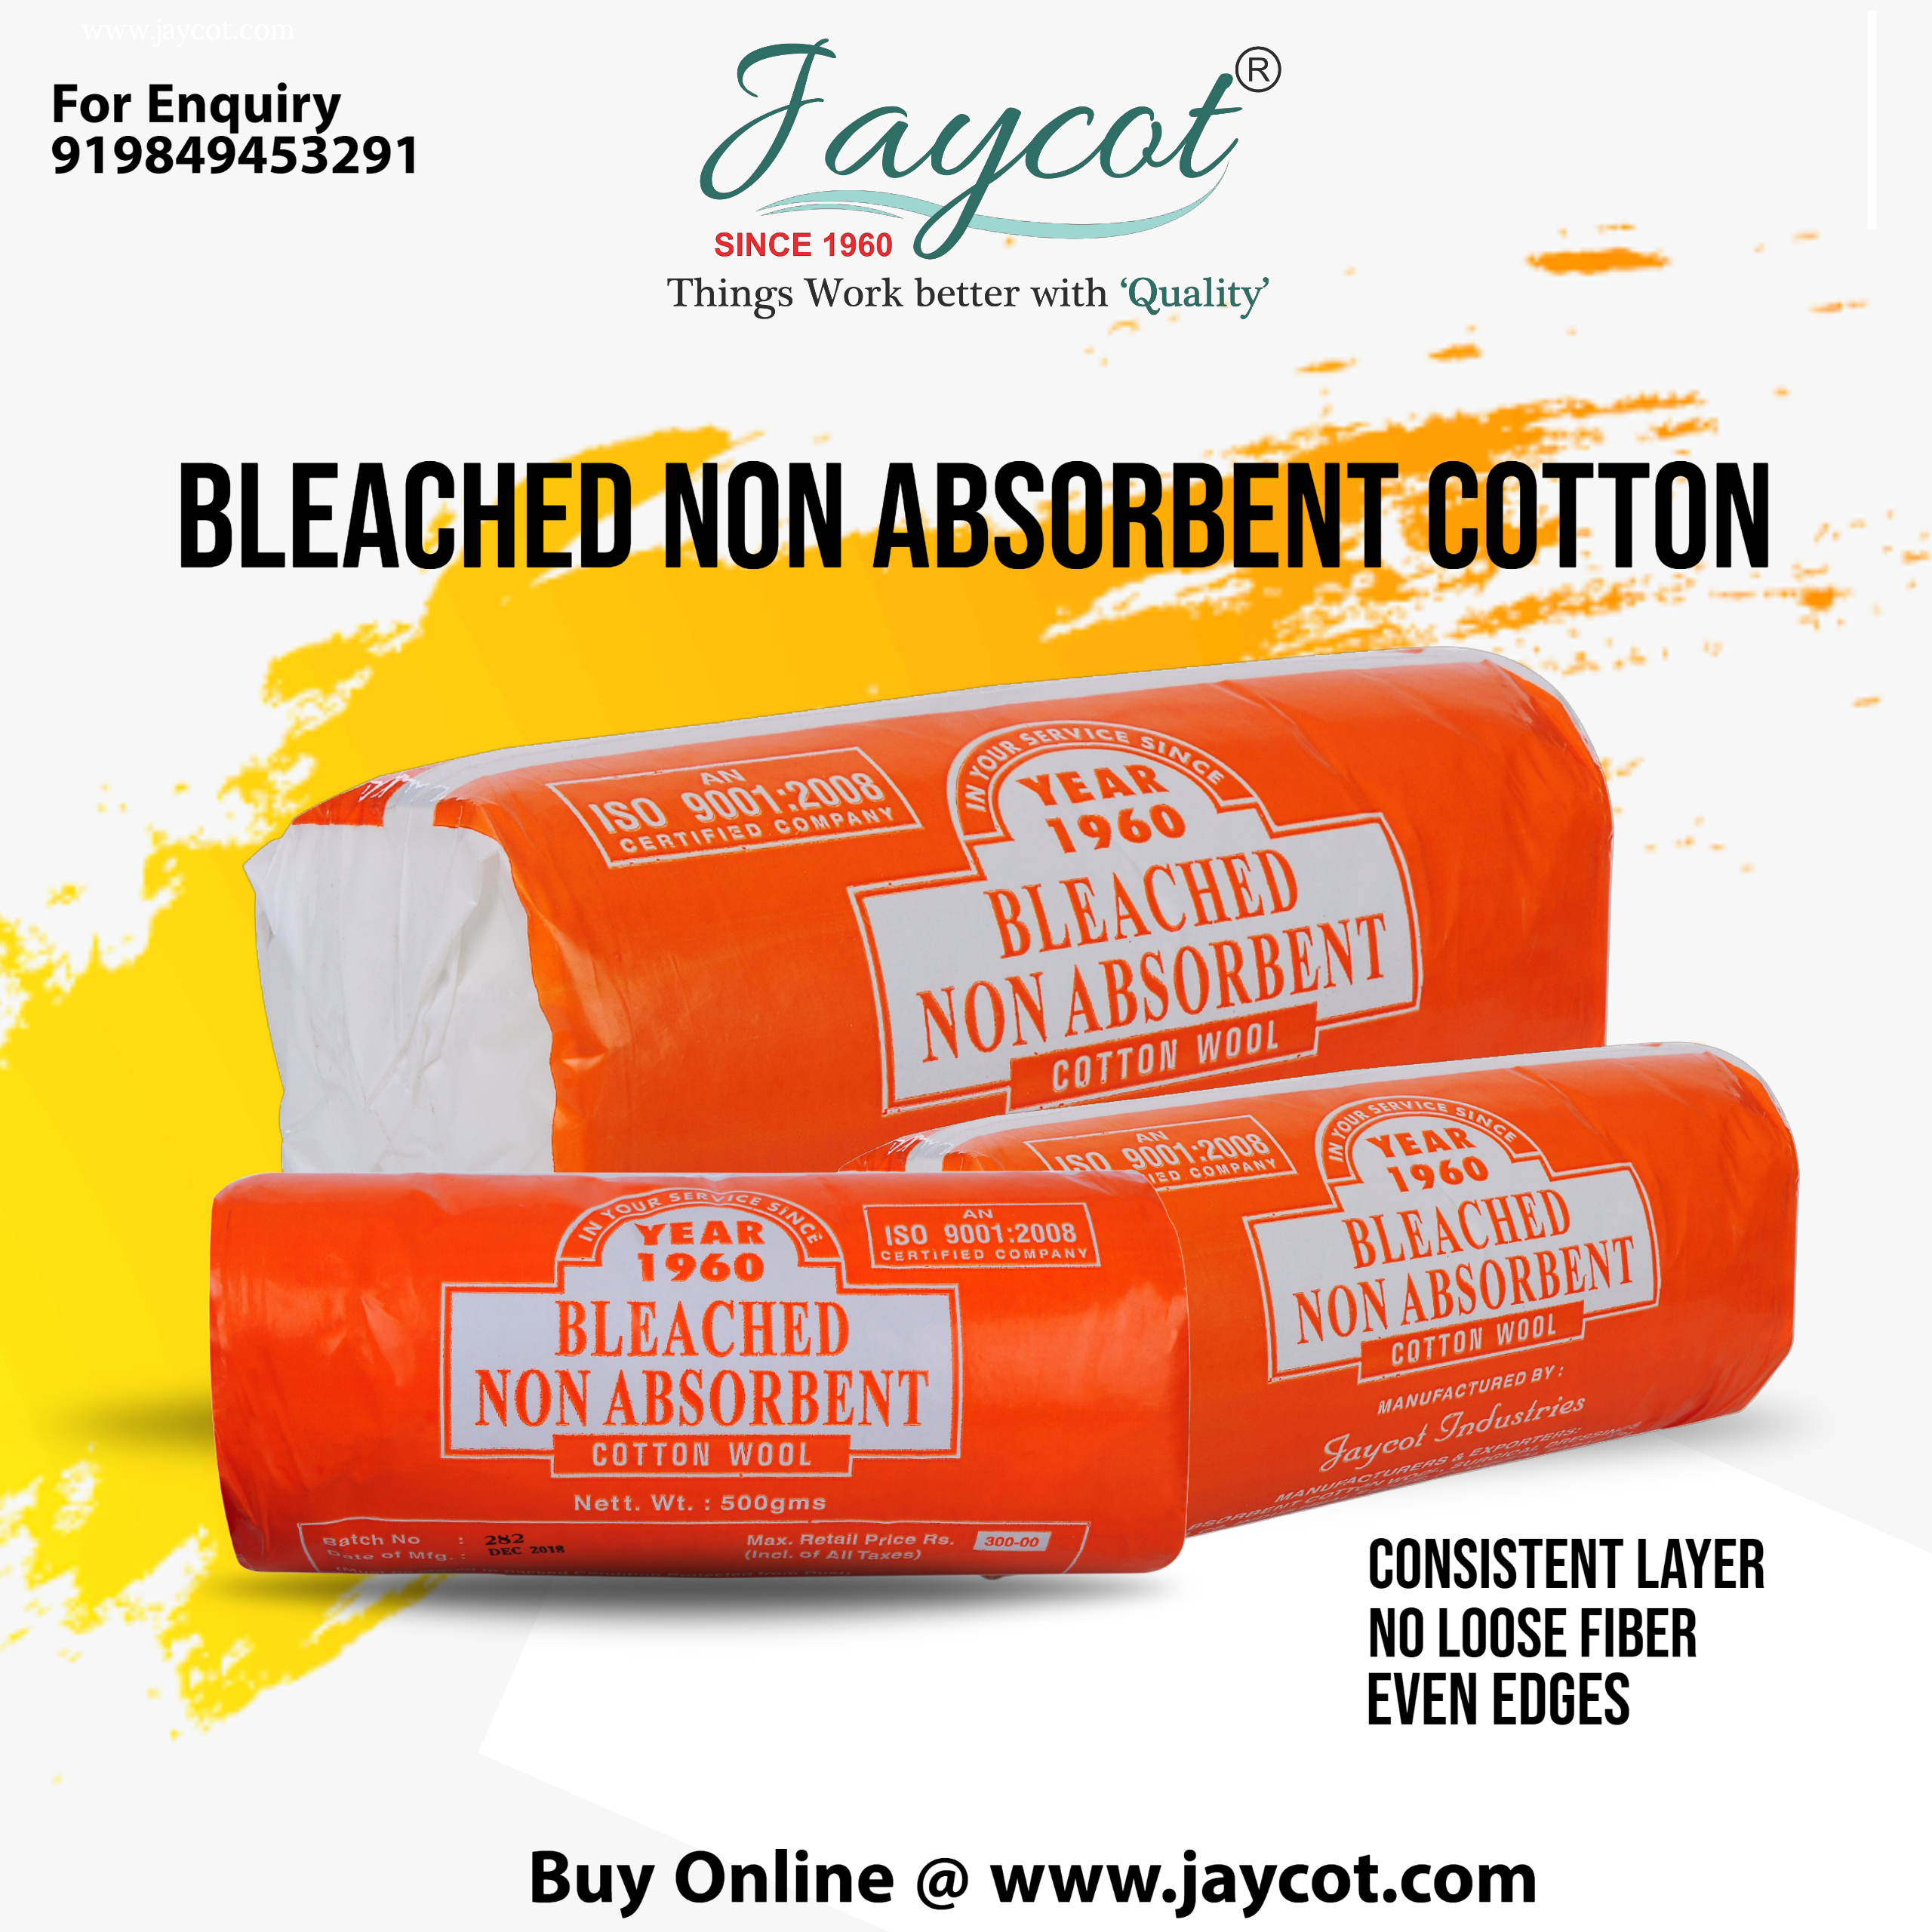 Bleached Non Absorbent Cotton Wool Manufacturers Suppliers